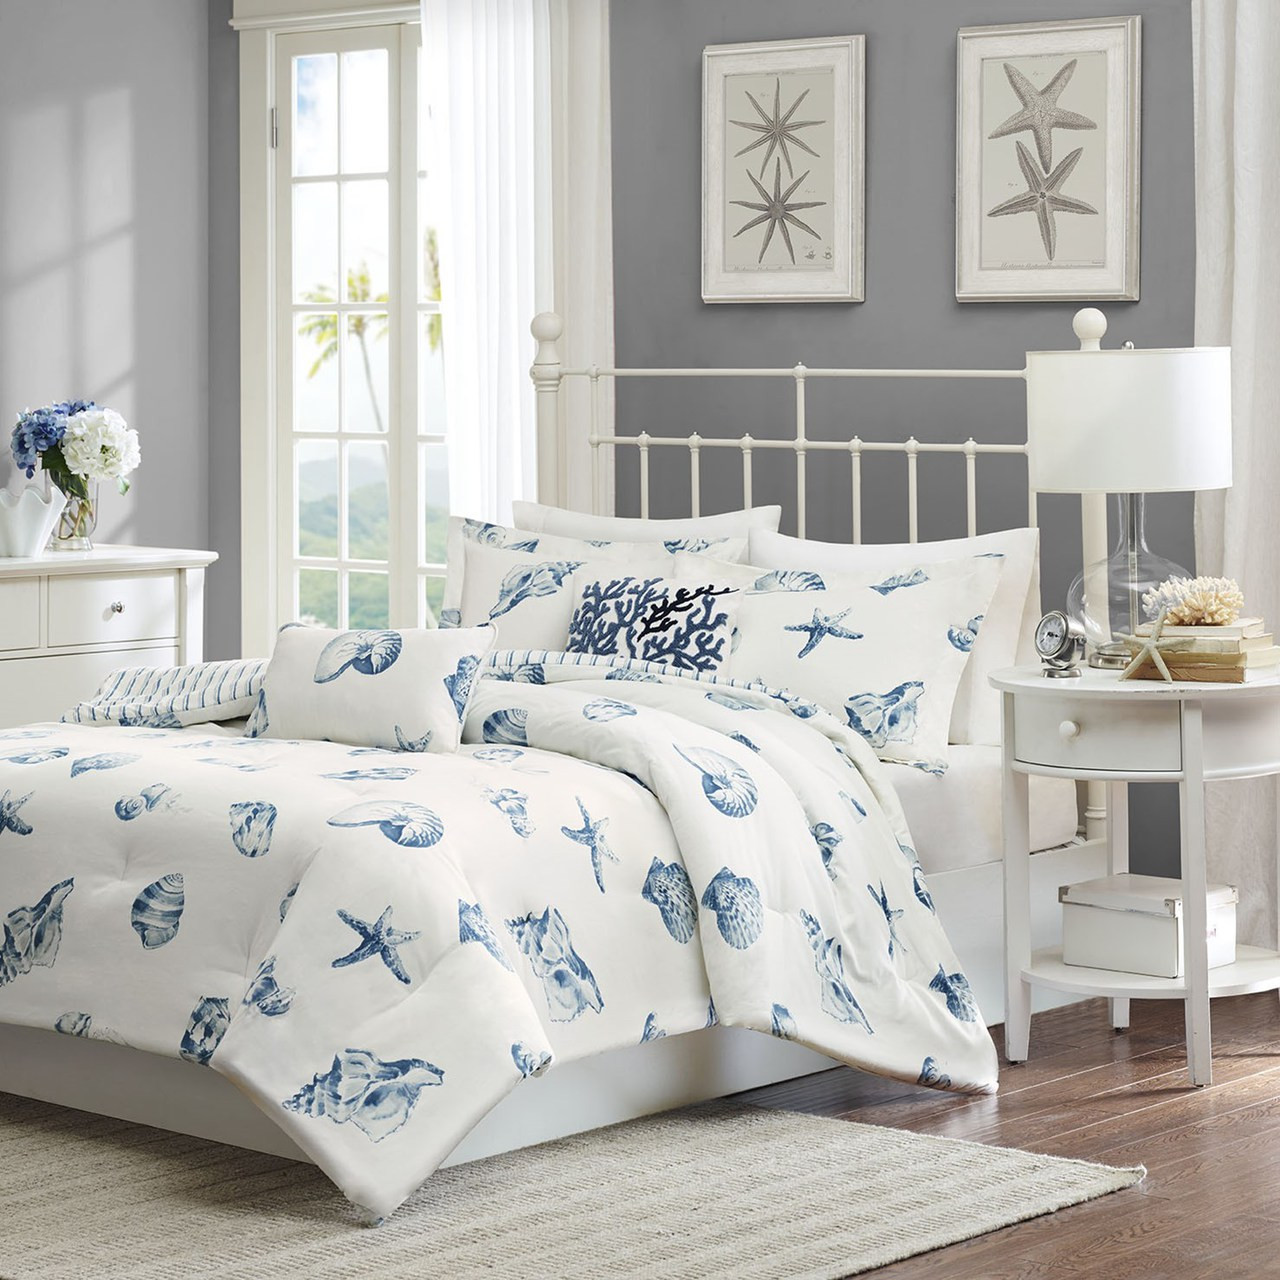 Beach House Blues Comforter Set King Size